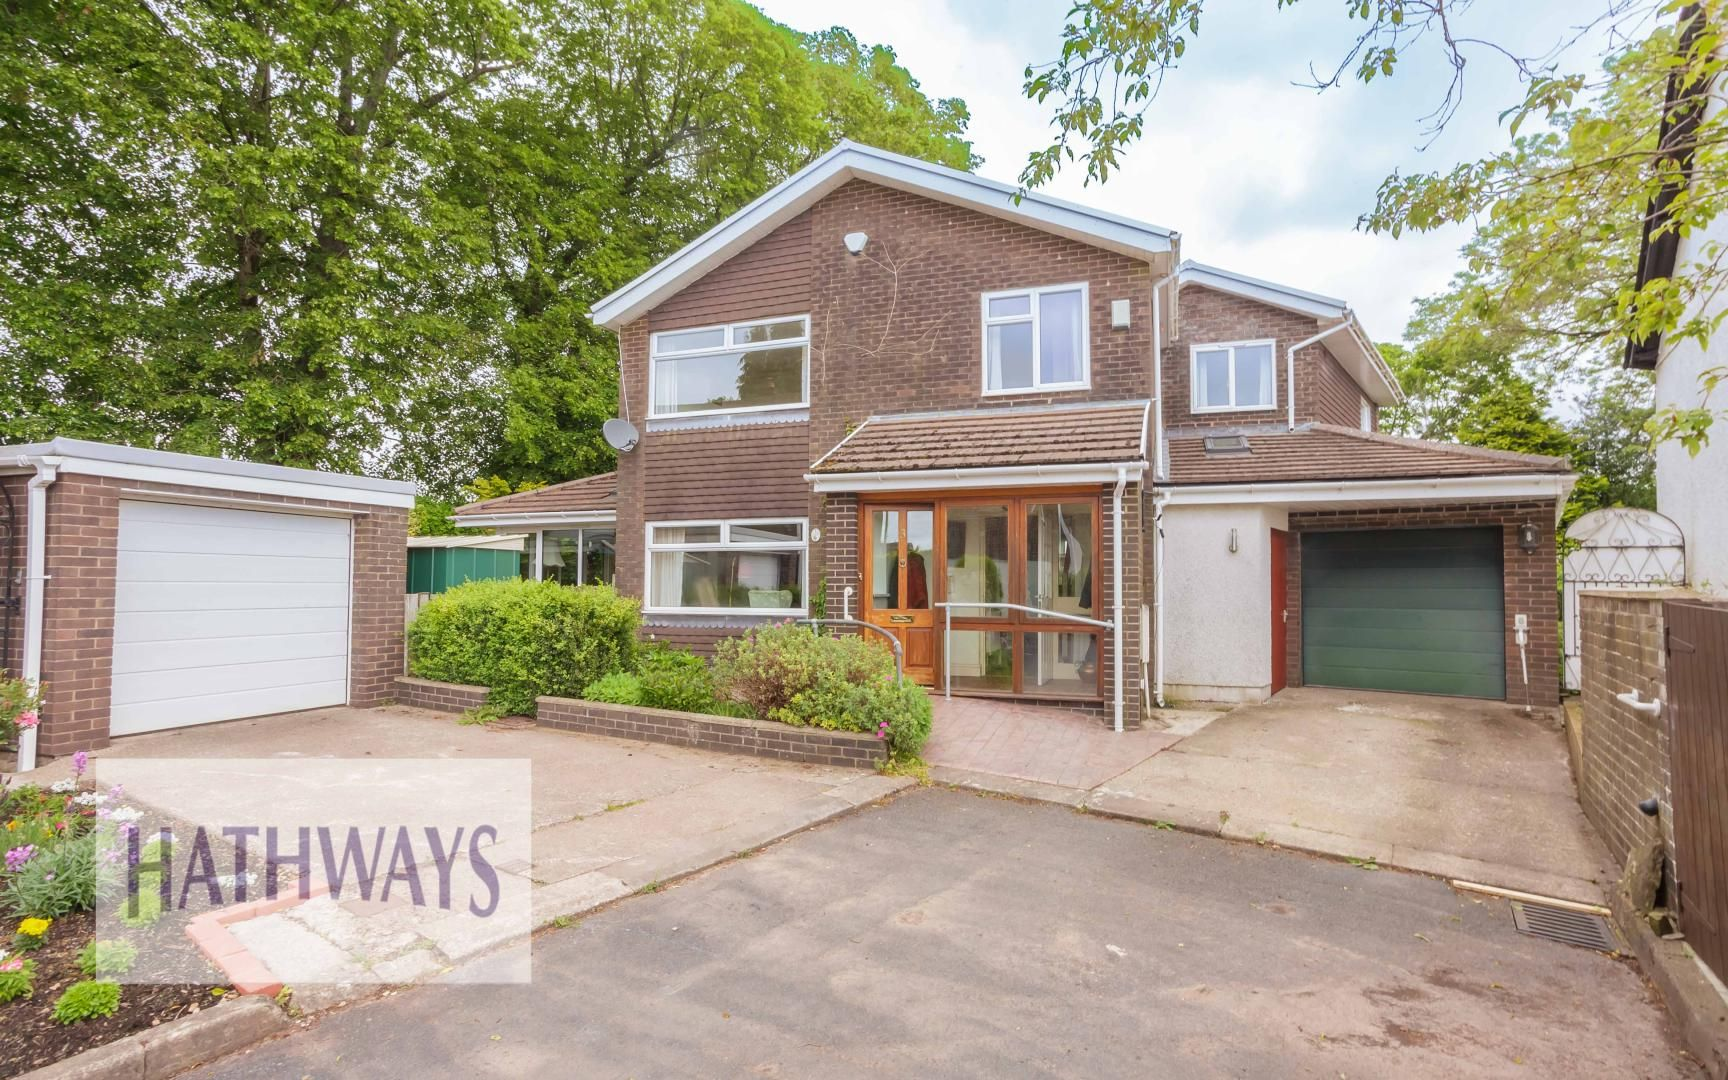 4 bed house for sale in Church Farm Close, NP20